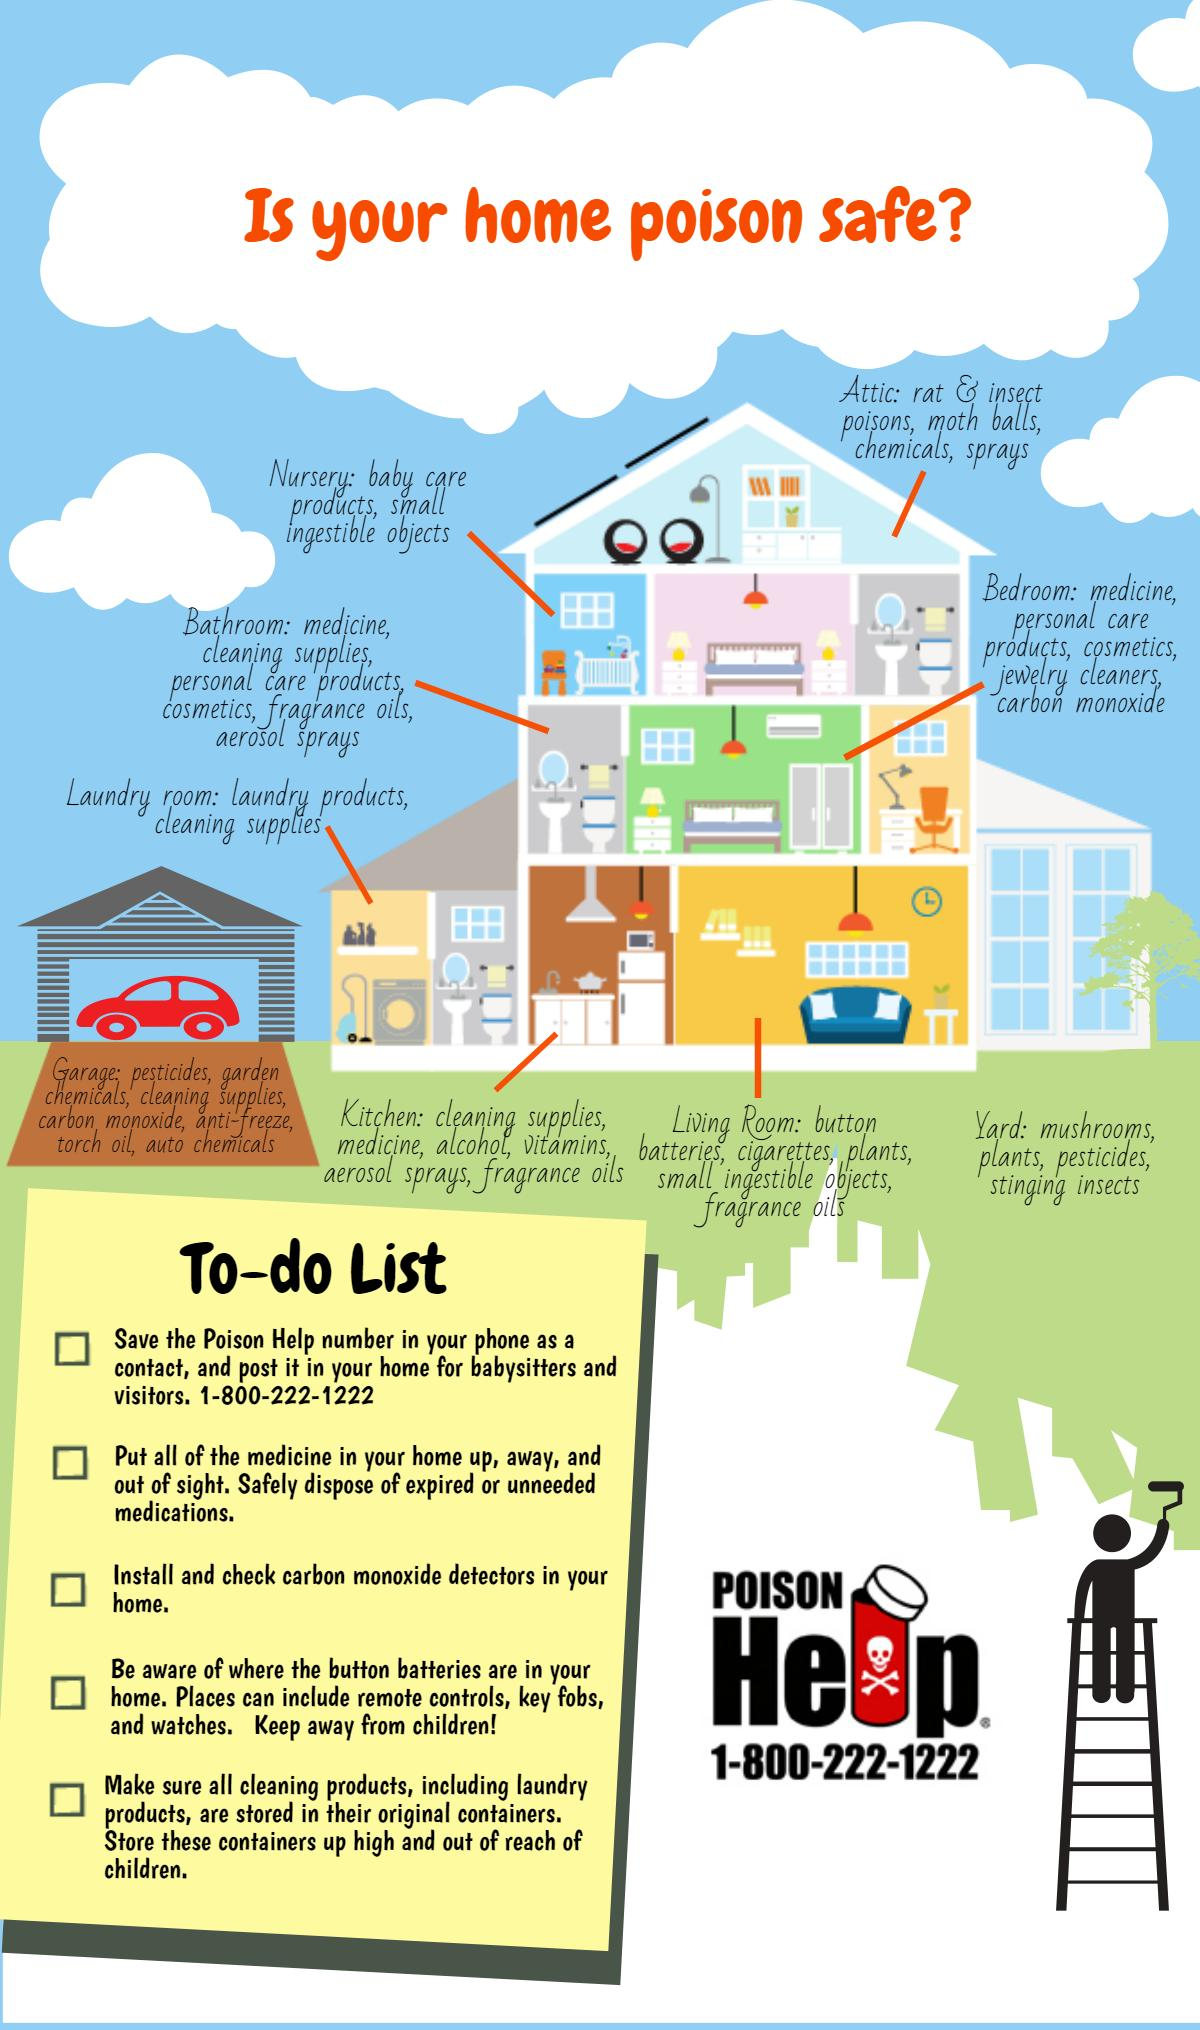 Is Your Home Poison Safe